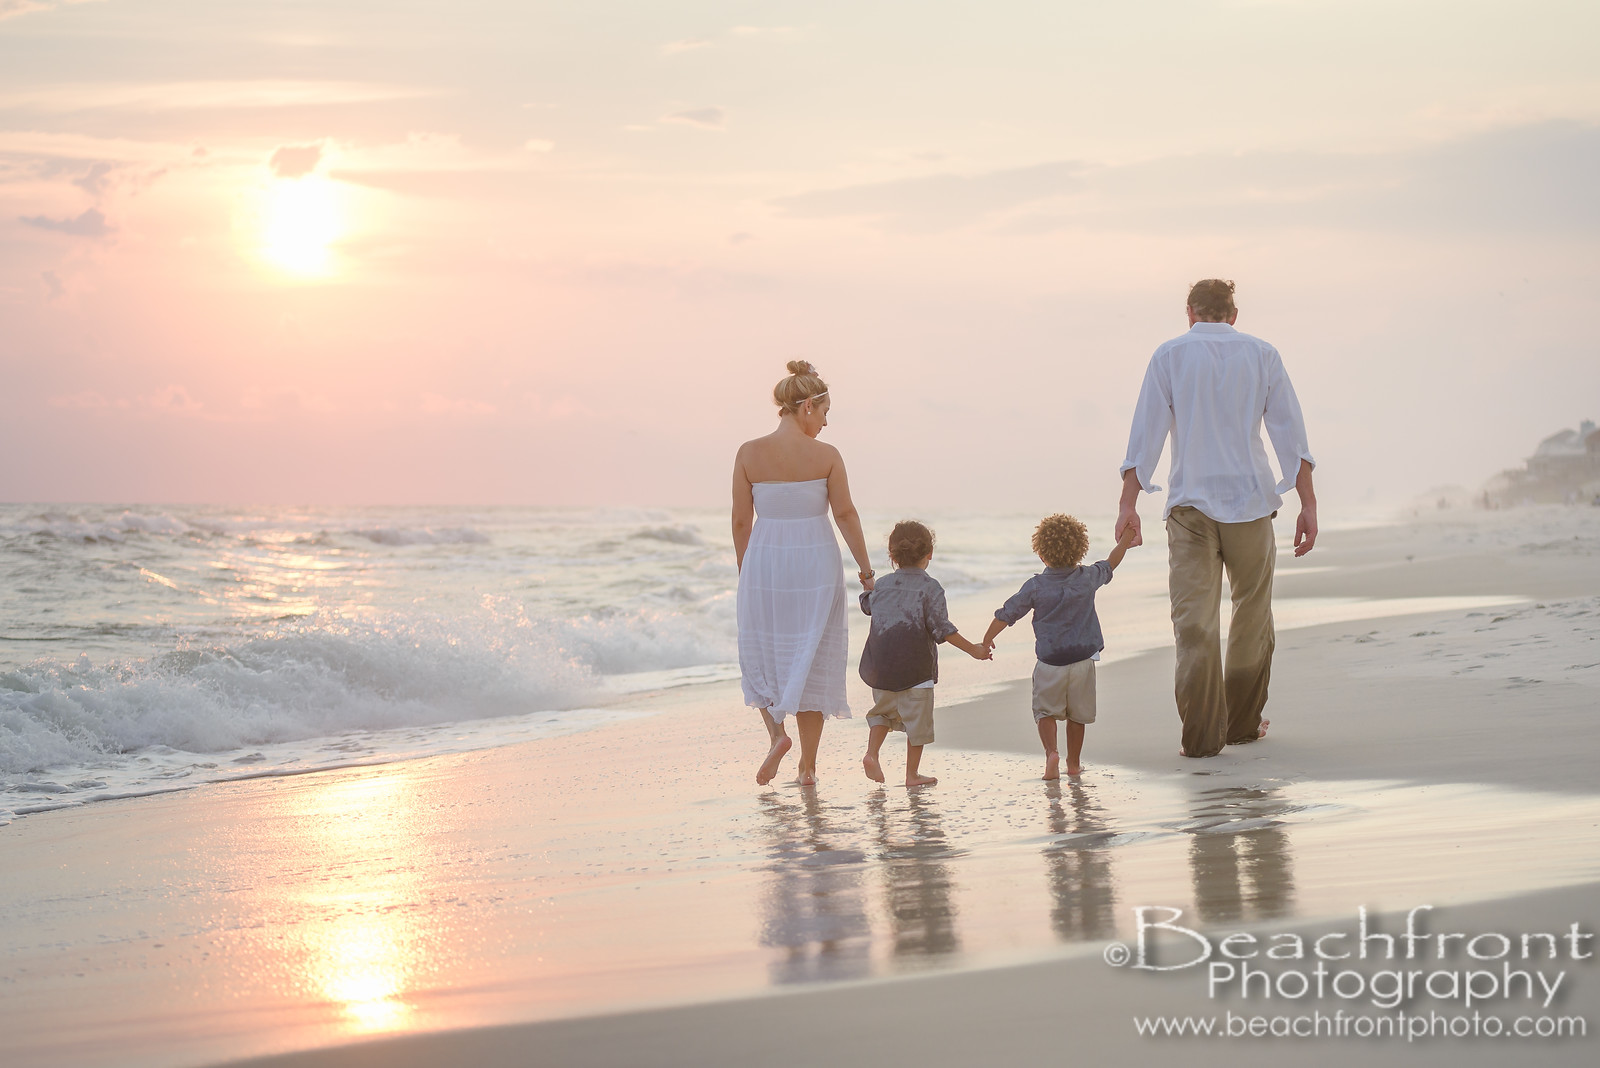 Gregory - Rosemary Beach Family Portrait Photographers.